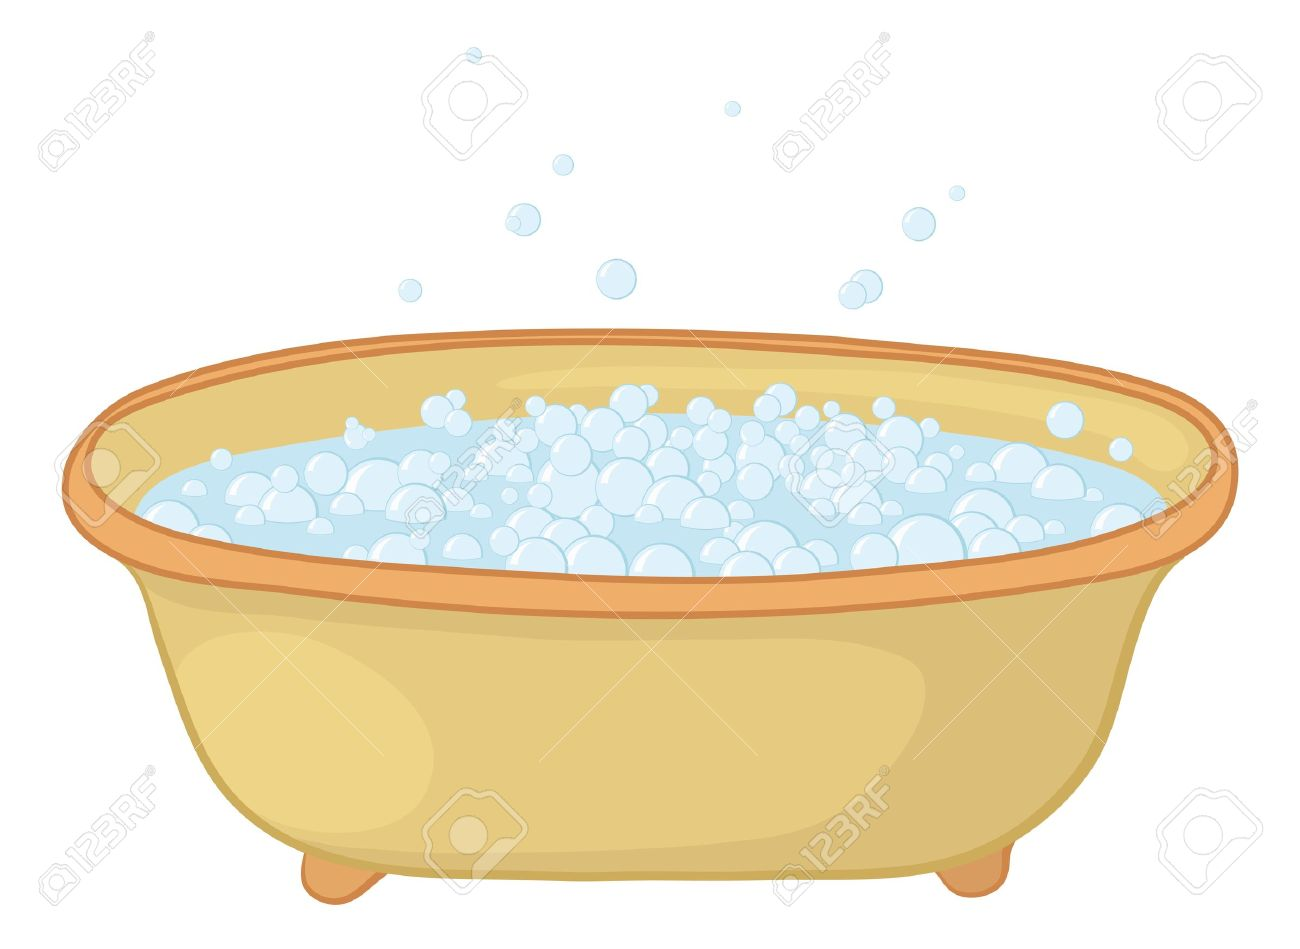 Old Bathtub With Blue Bubbles Of Soap Suds. Royalty Free Cliparts ...